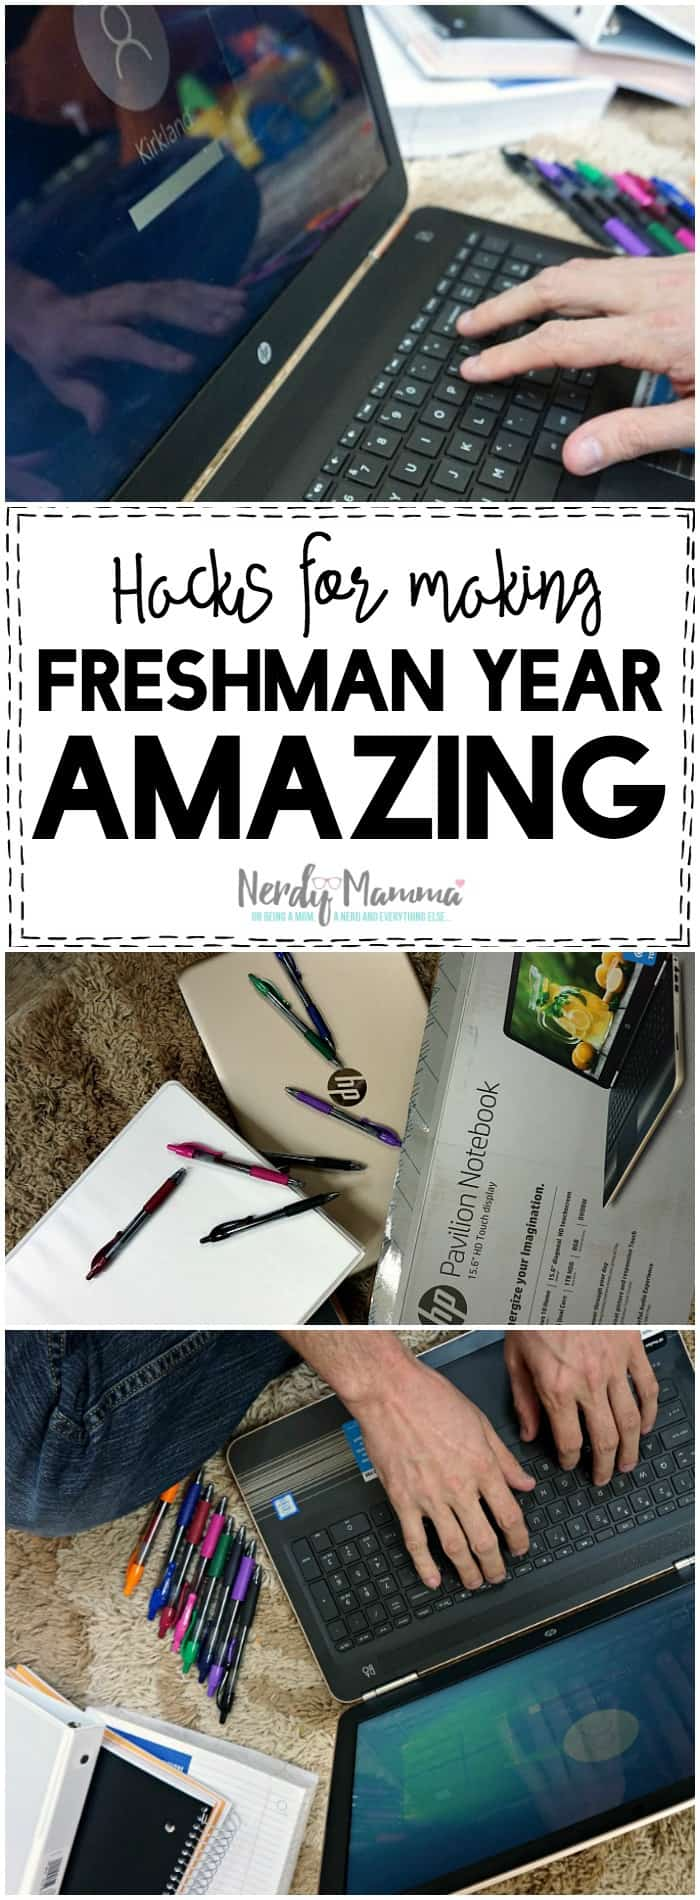 hacks for making freshman year amazing nerdy mamma i love these 5 hacks for making freshman year amazing so smart to remind parents